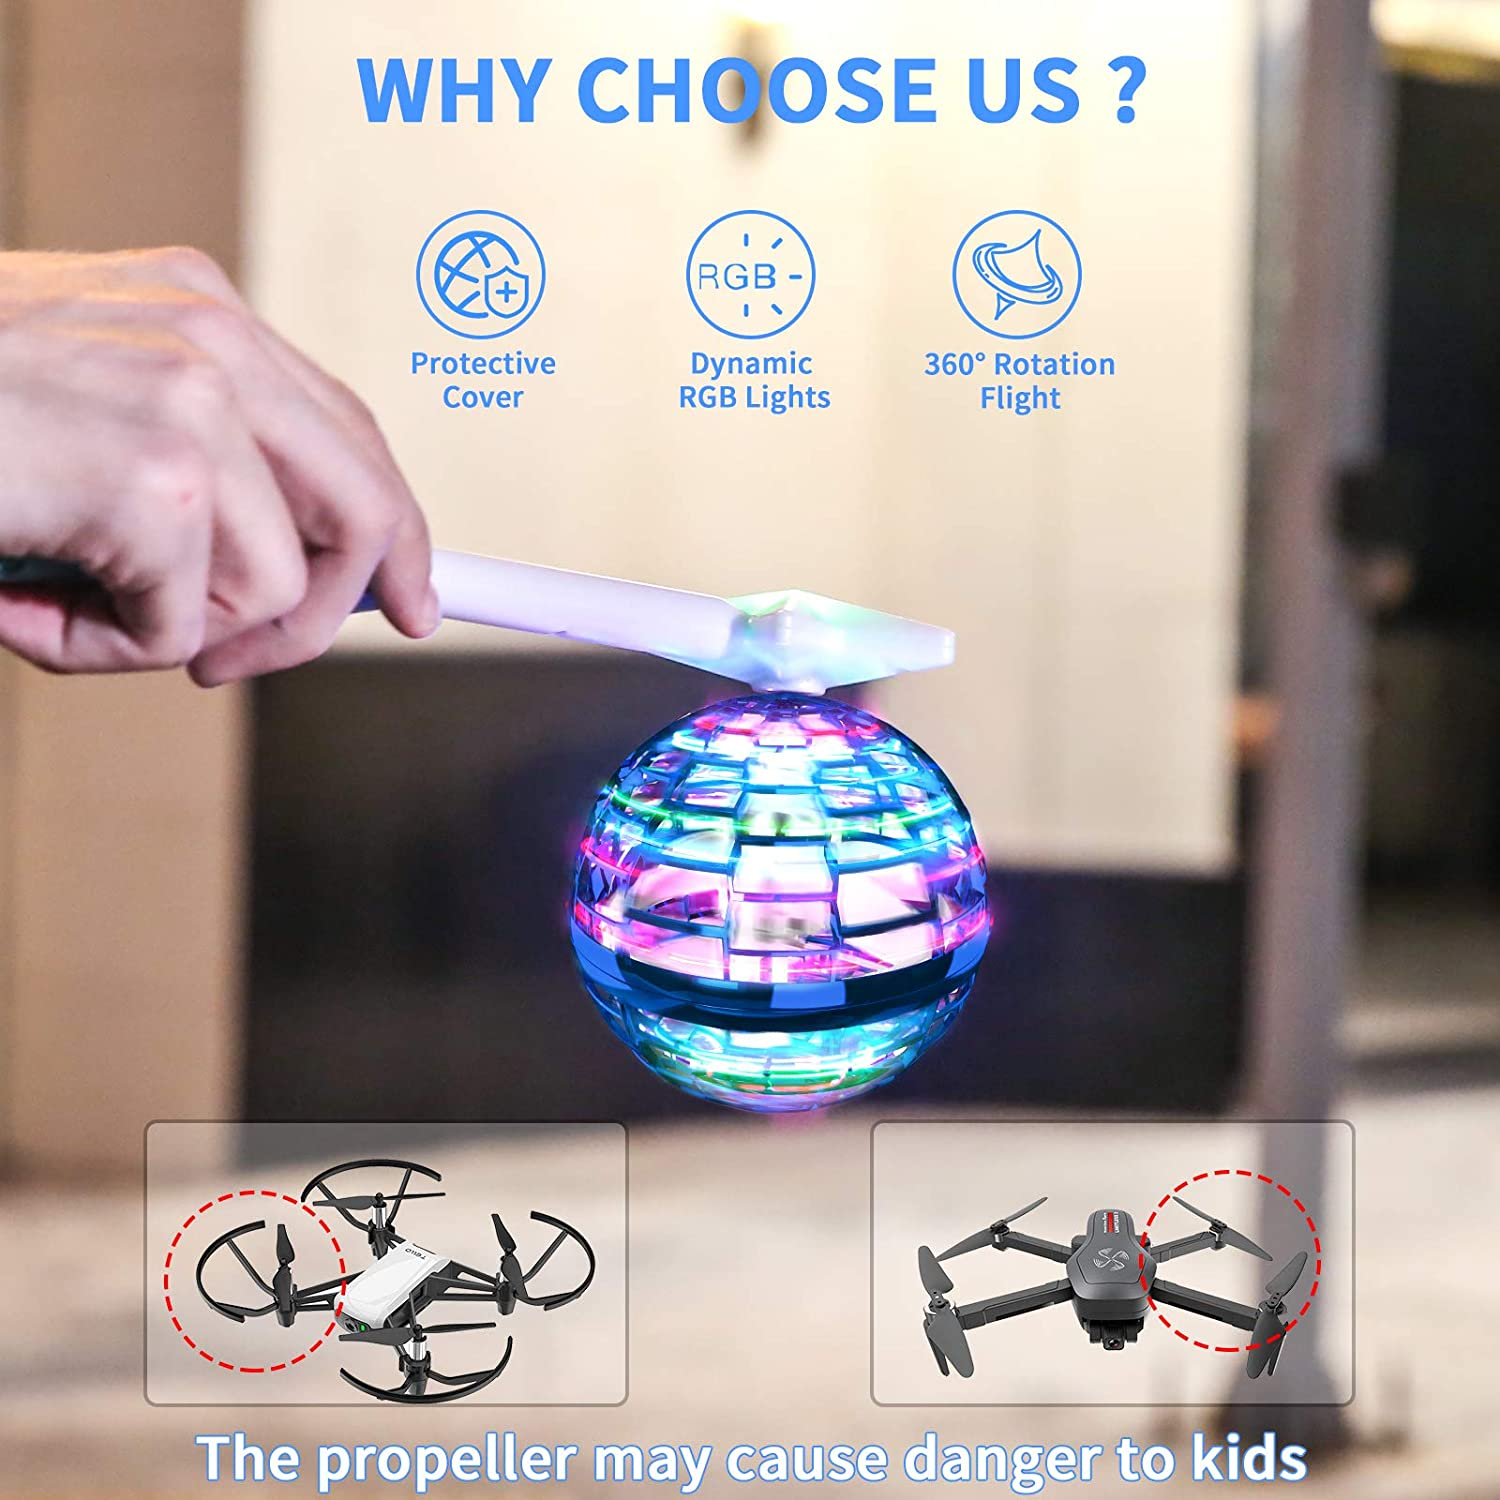 FlyNova Pro Magic Flying Toys Ball Built-in RGB Lights with Magic Wand Shining Colorful Flying Drone for Kids Adults Indoor and Outdoor Games Toys Upgraded Version Blue